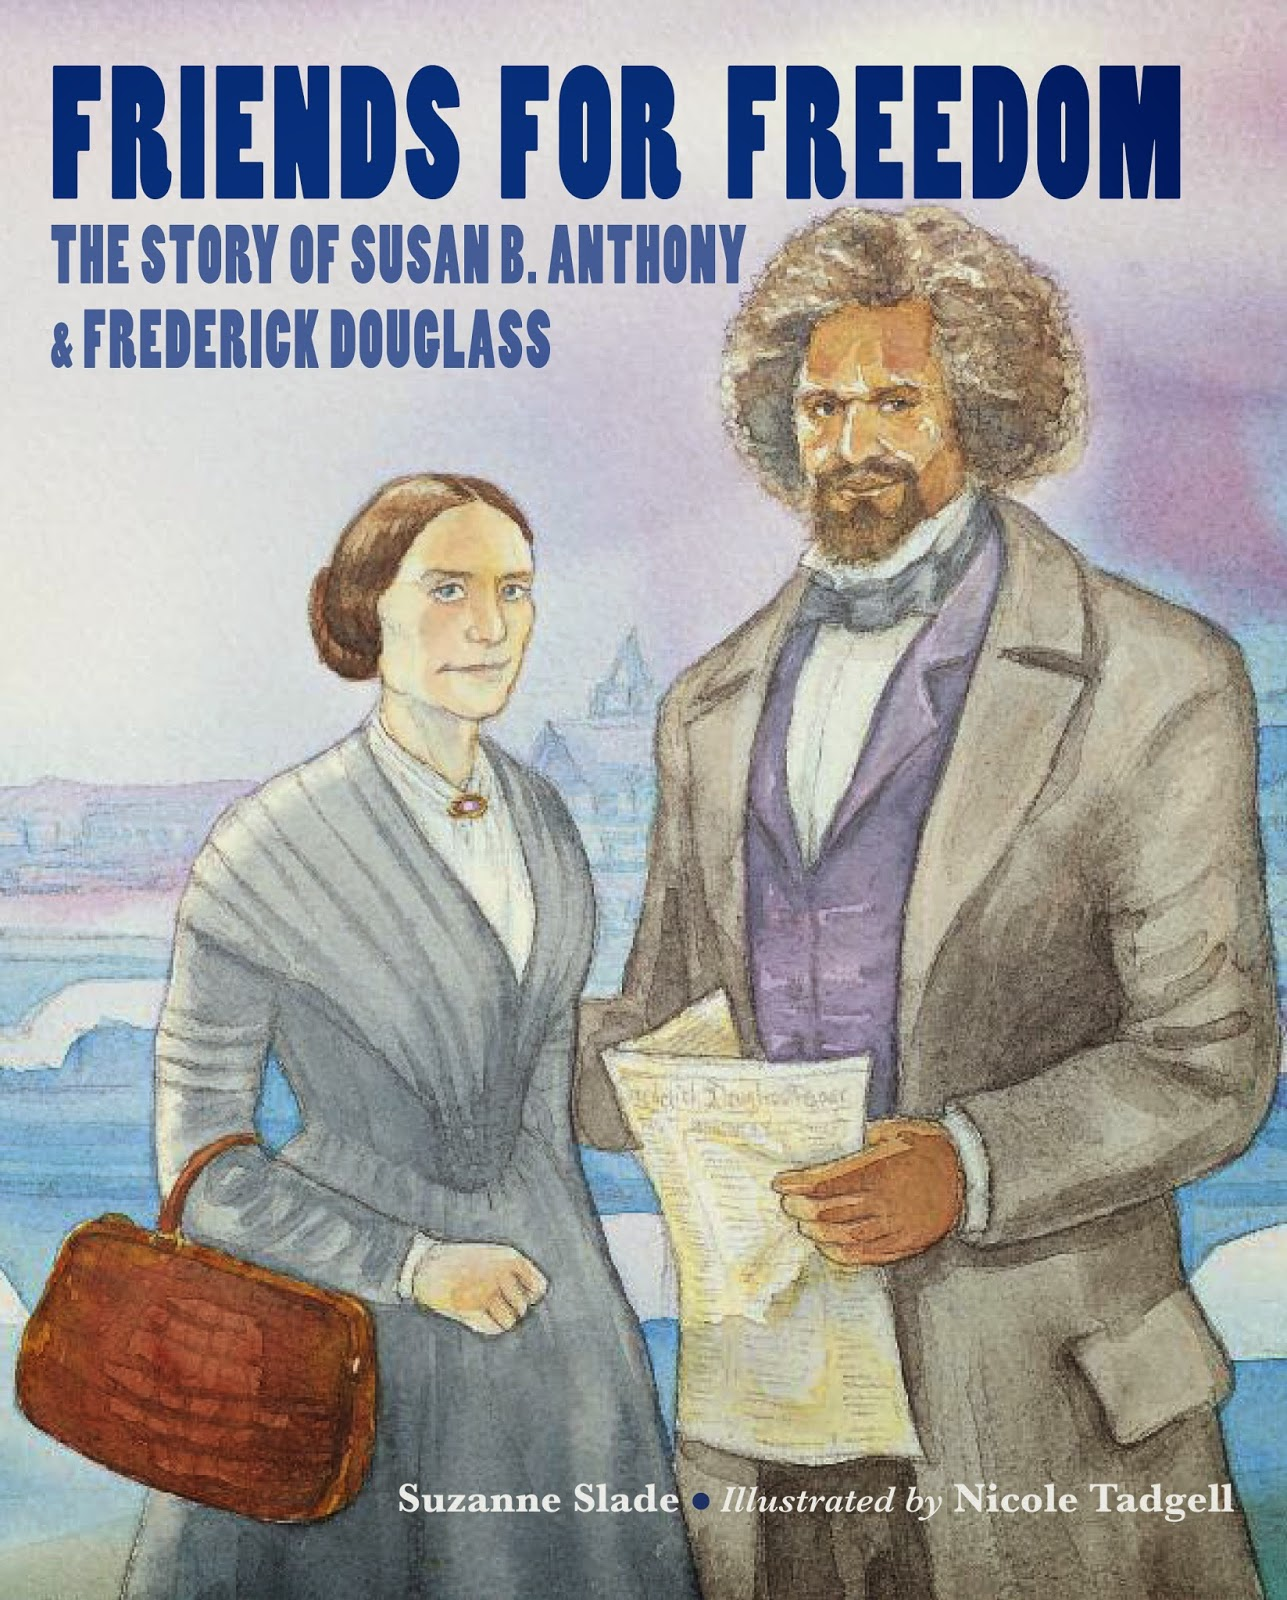 Frederick Douglass 8 1 2 by 11 Coloring Book Image | colorimage.website